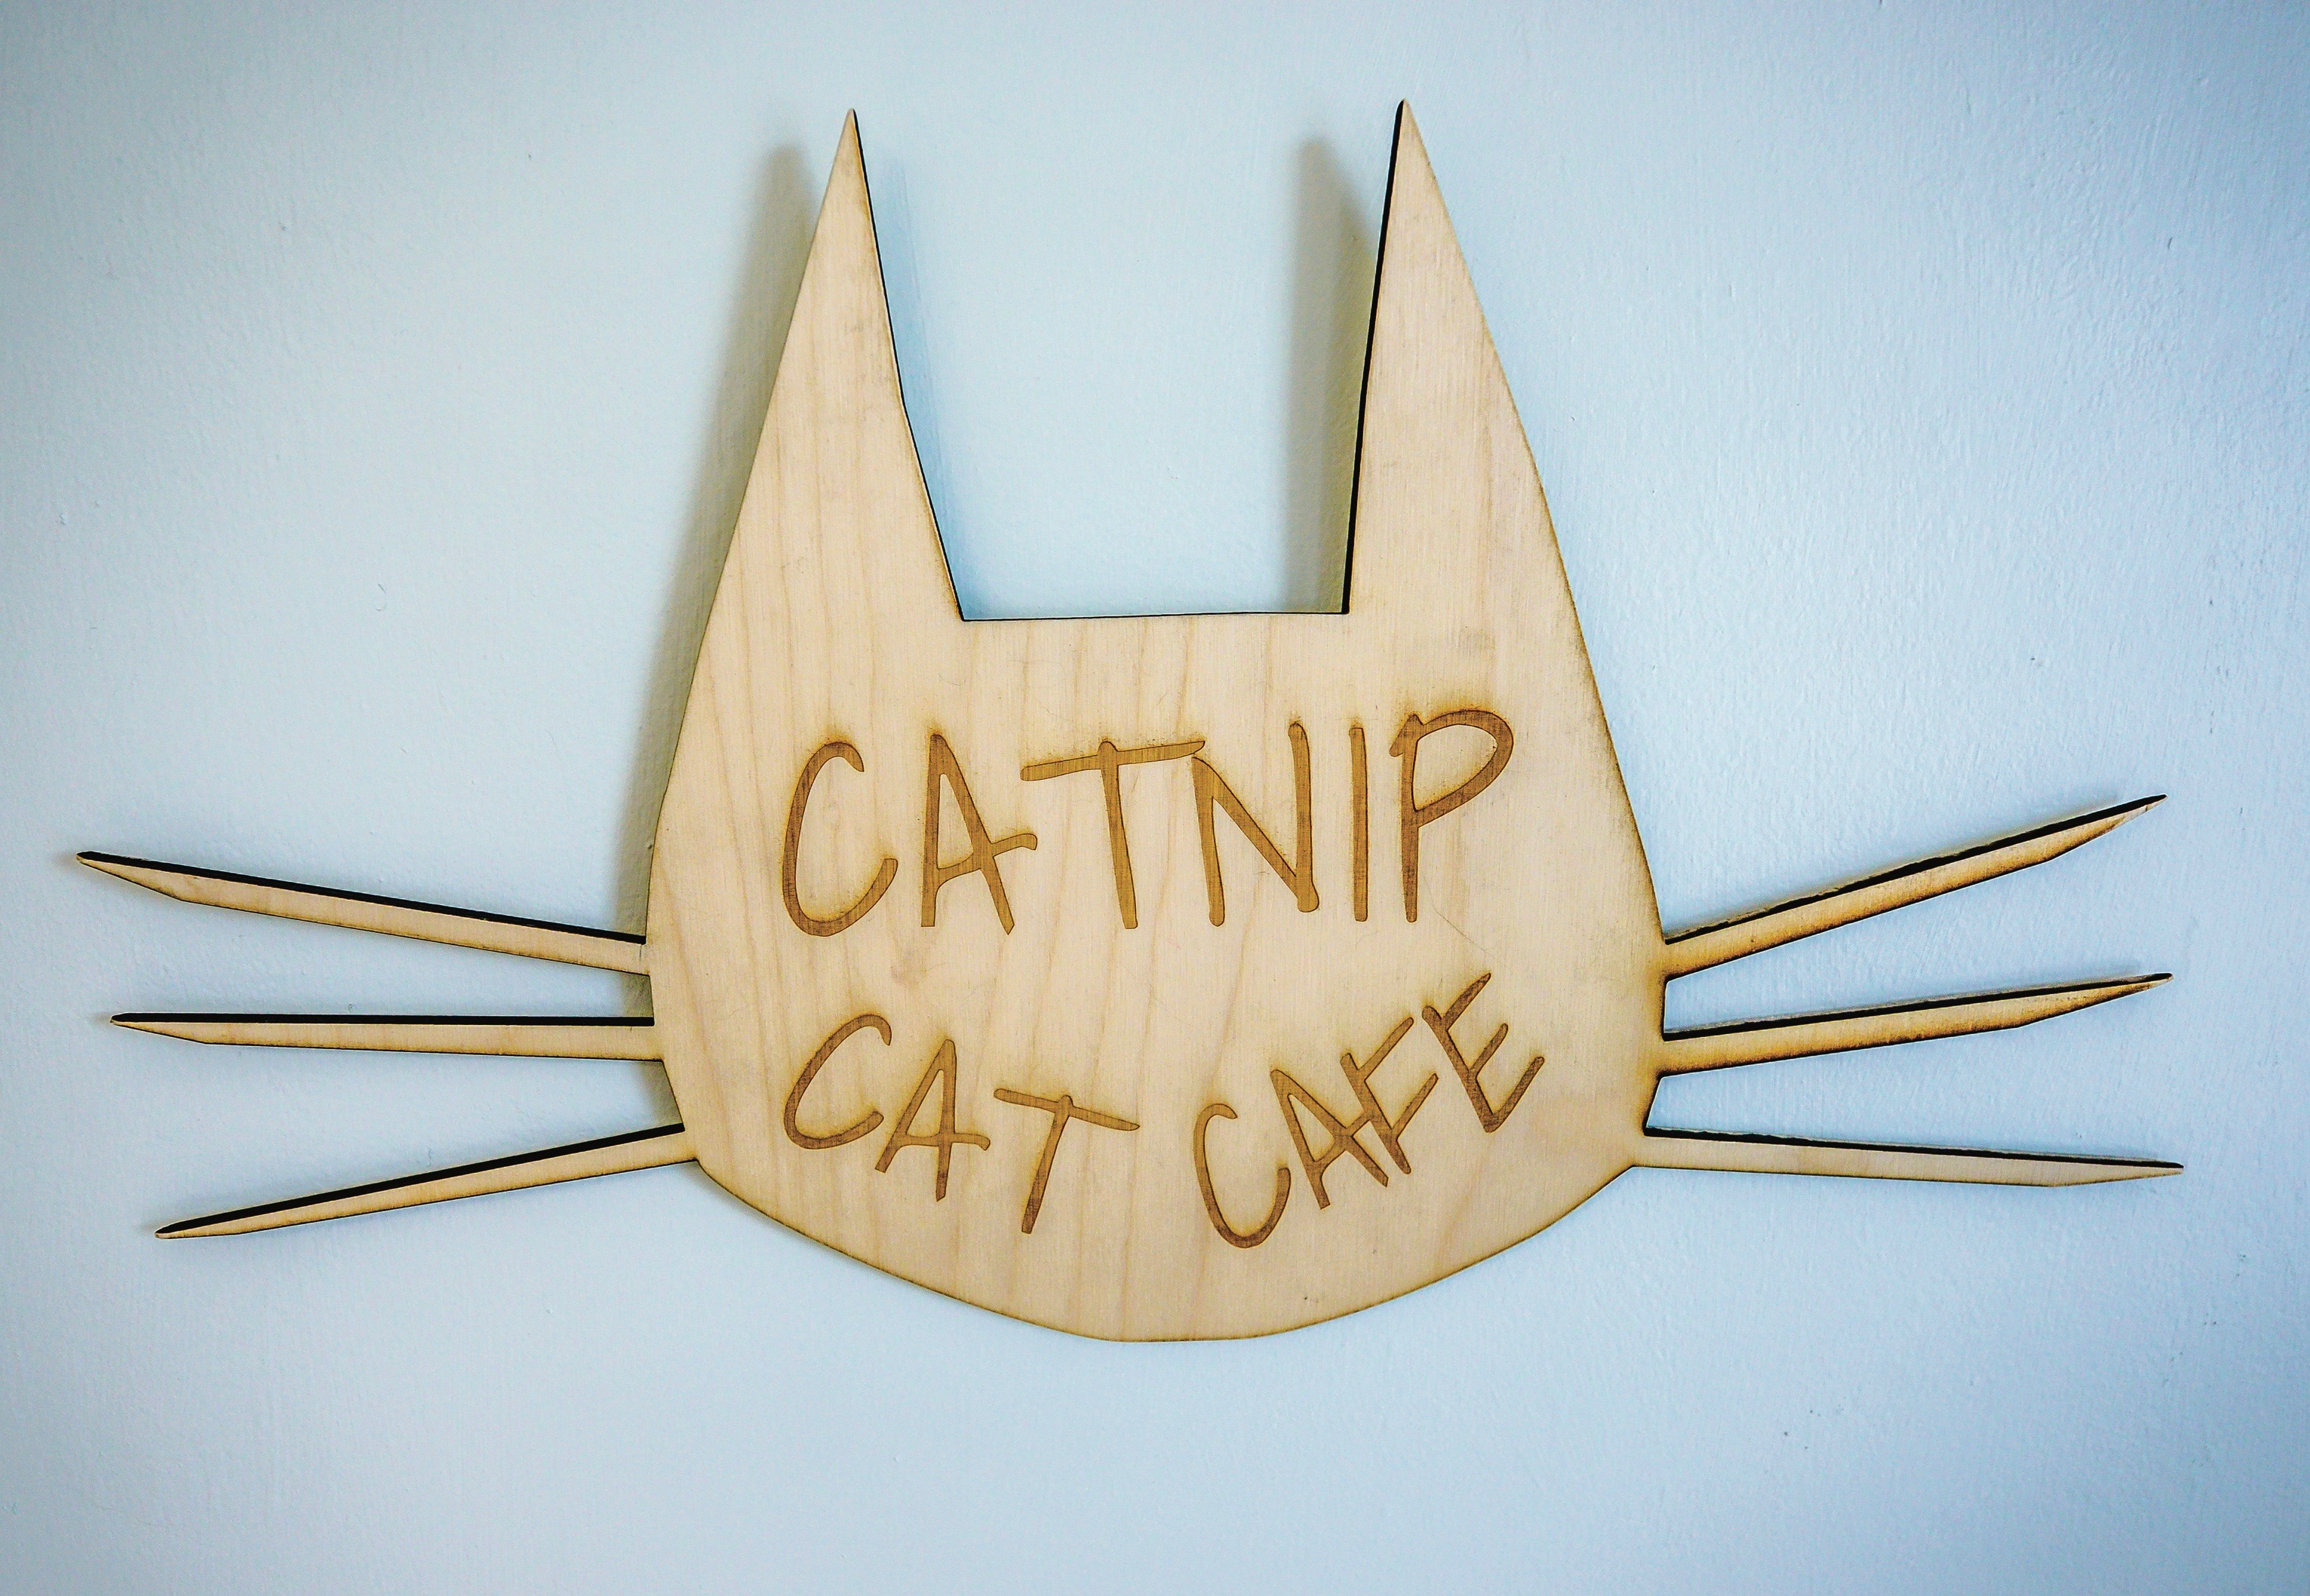 Catnip Cat Cafe, Homeless cats, homeless kitties